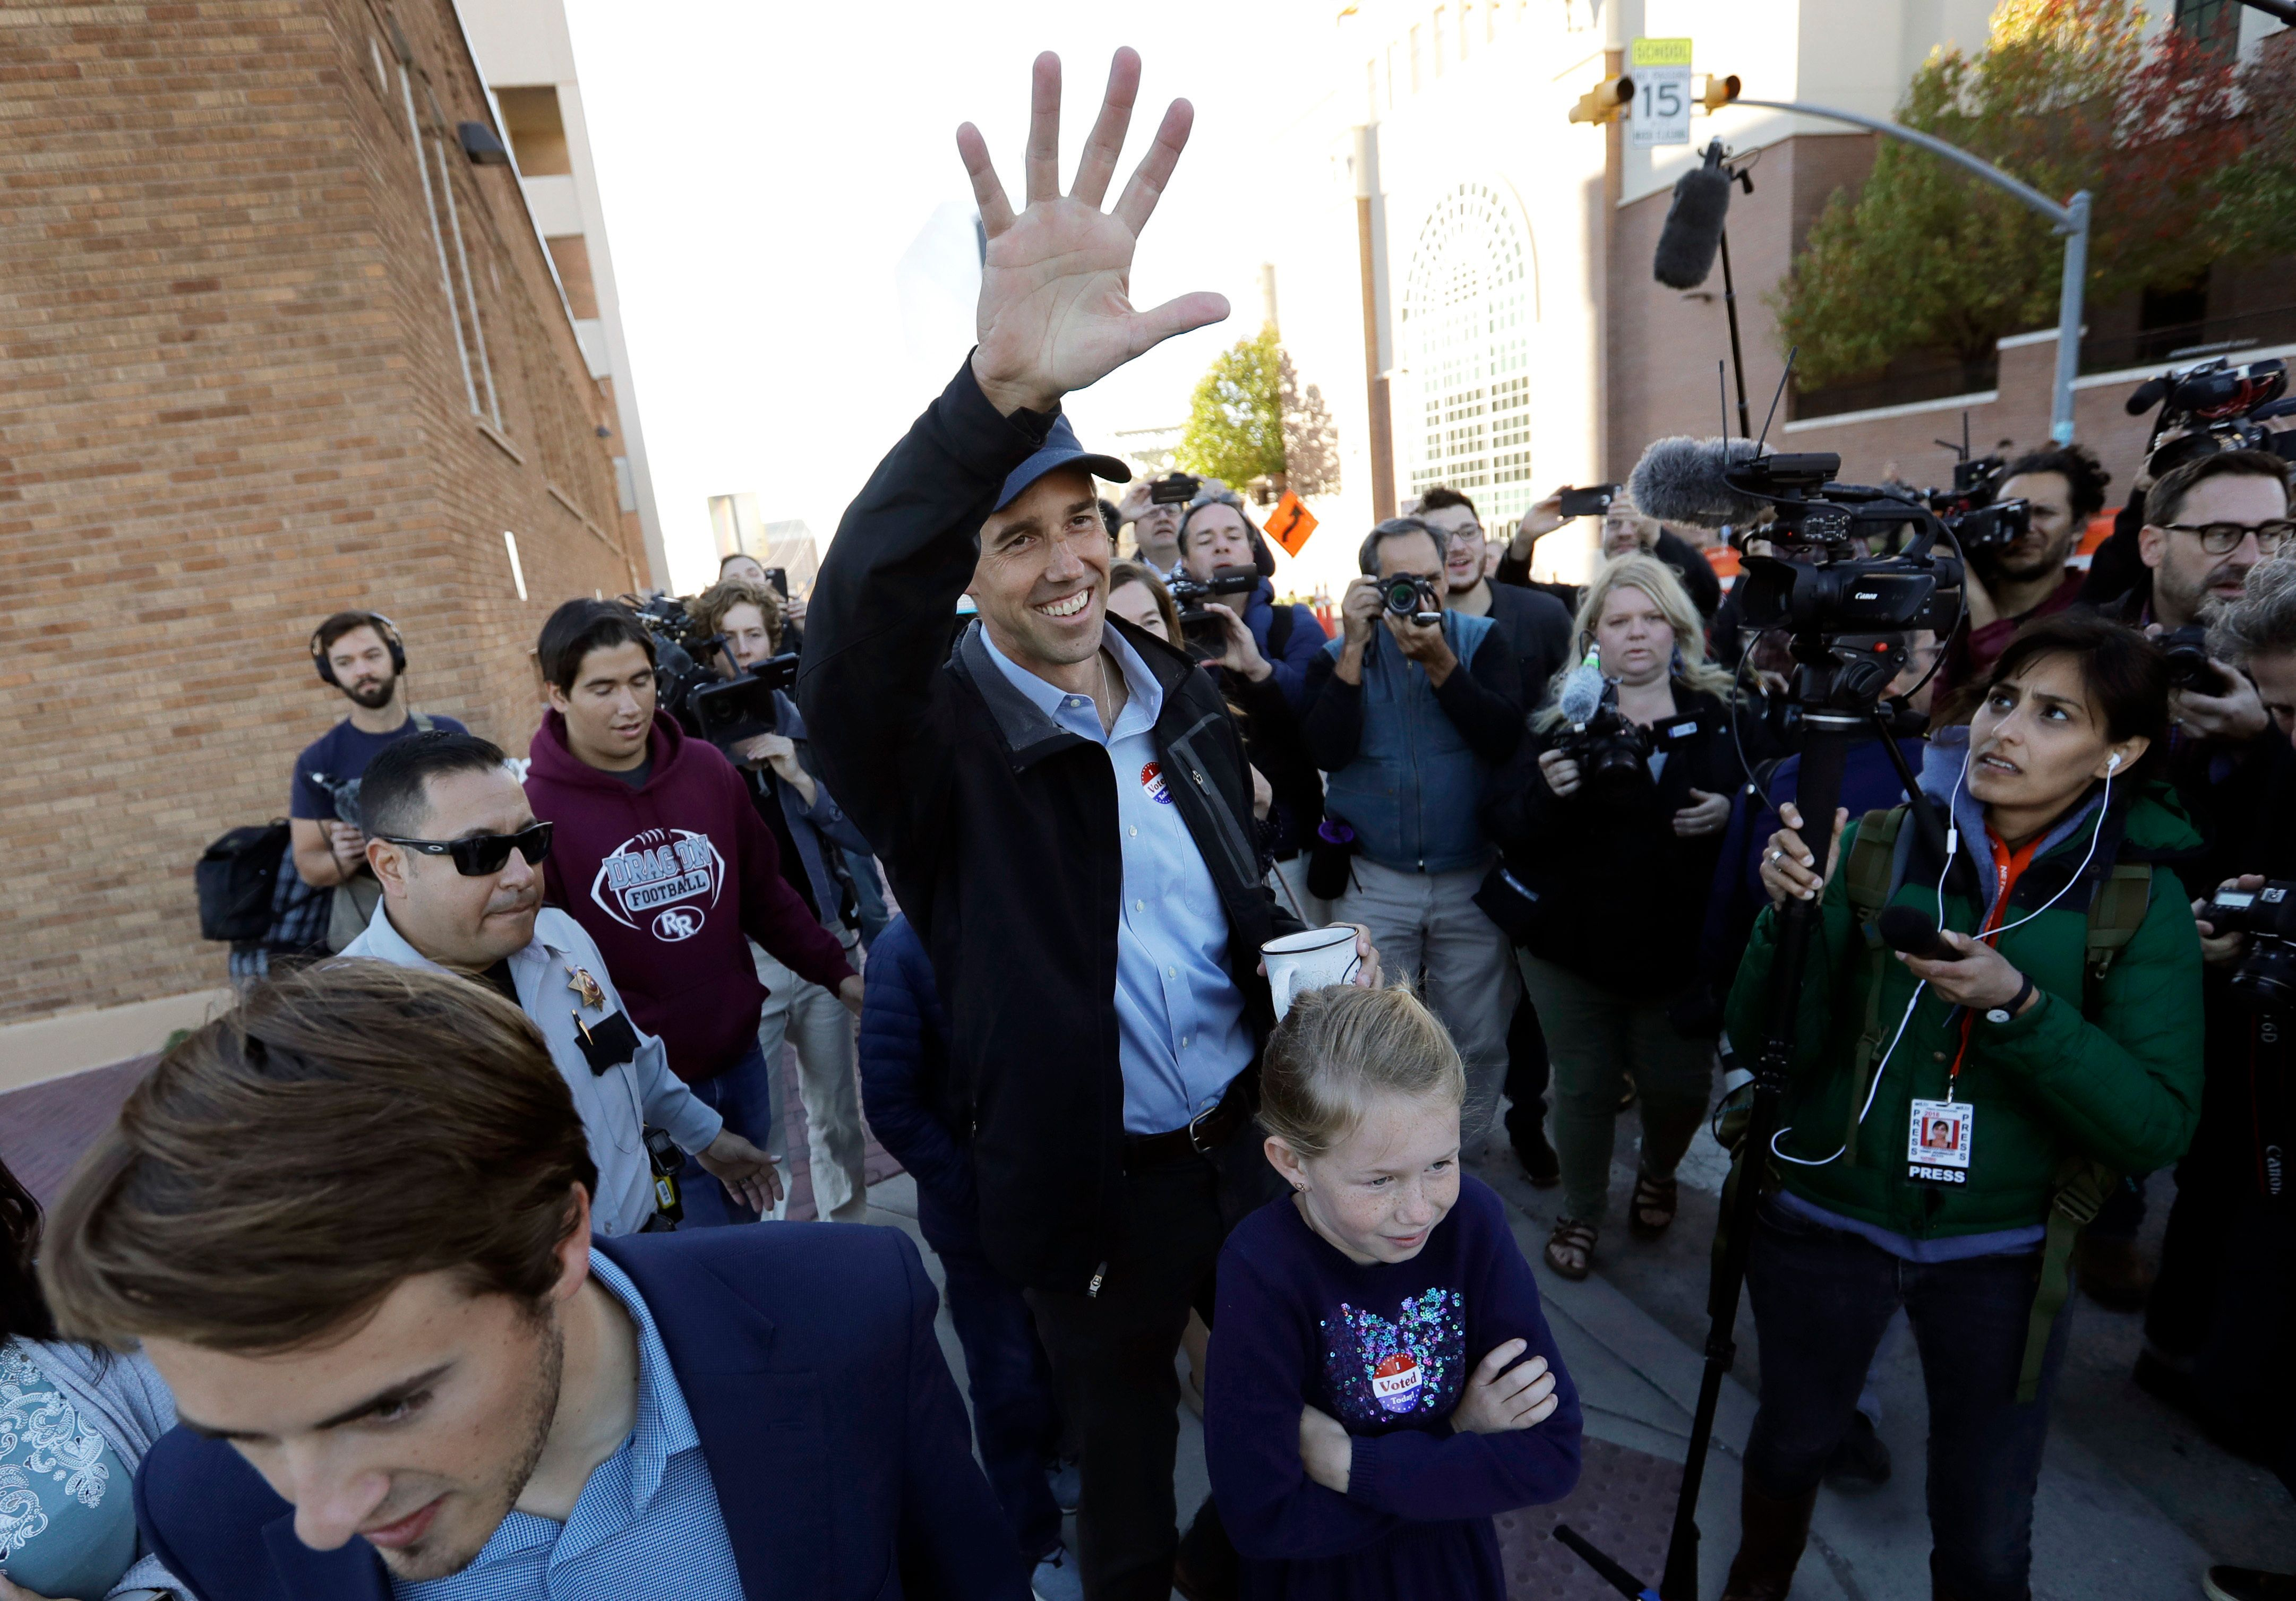 Democrat Beto O'Rourke lost his quixotic bid to unseat GOP Sen. Ted Cruz in Texas. But O'Rourke's run left his party in a far